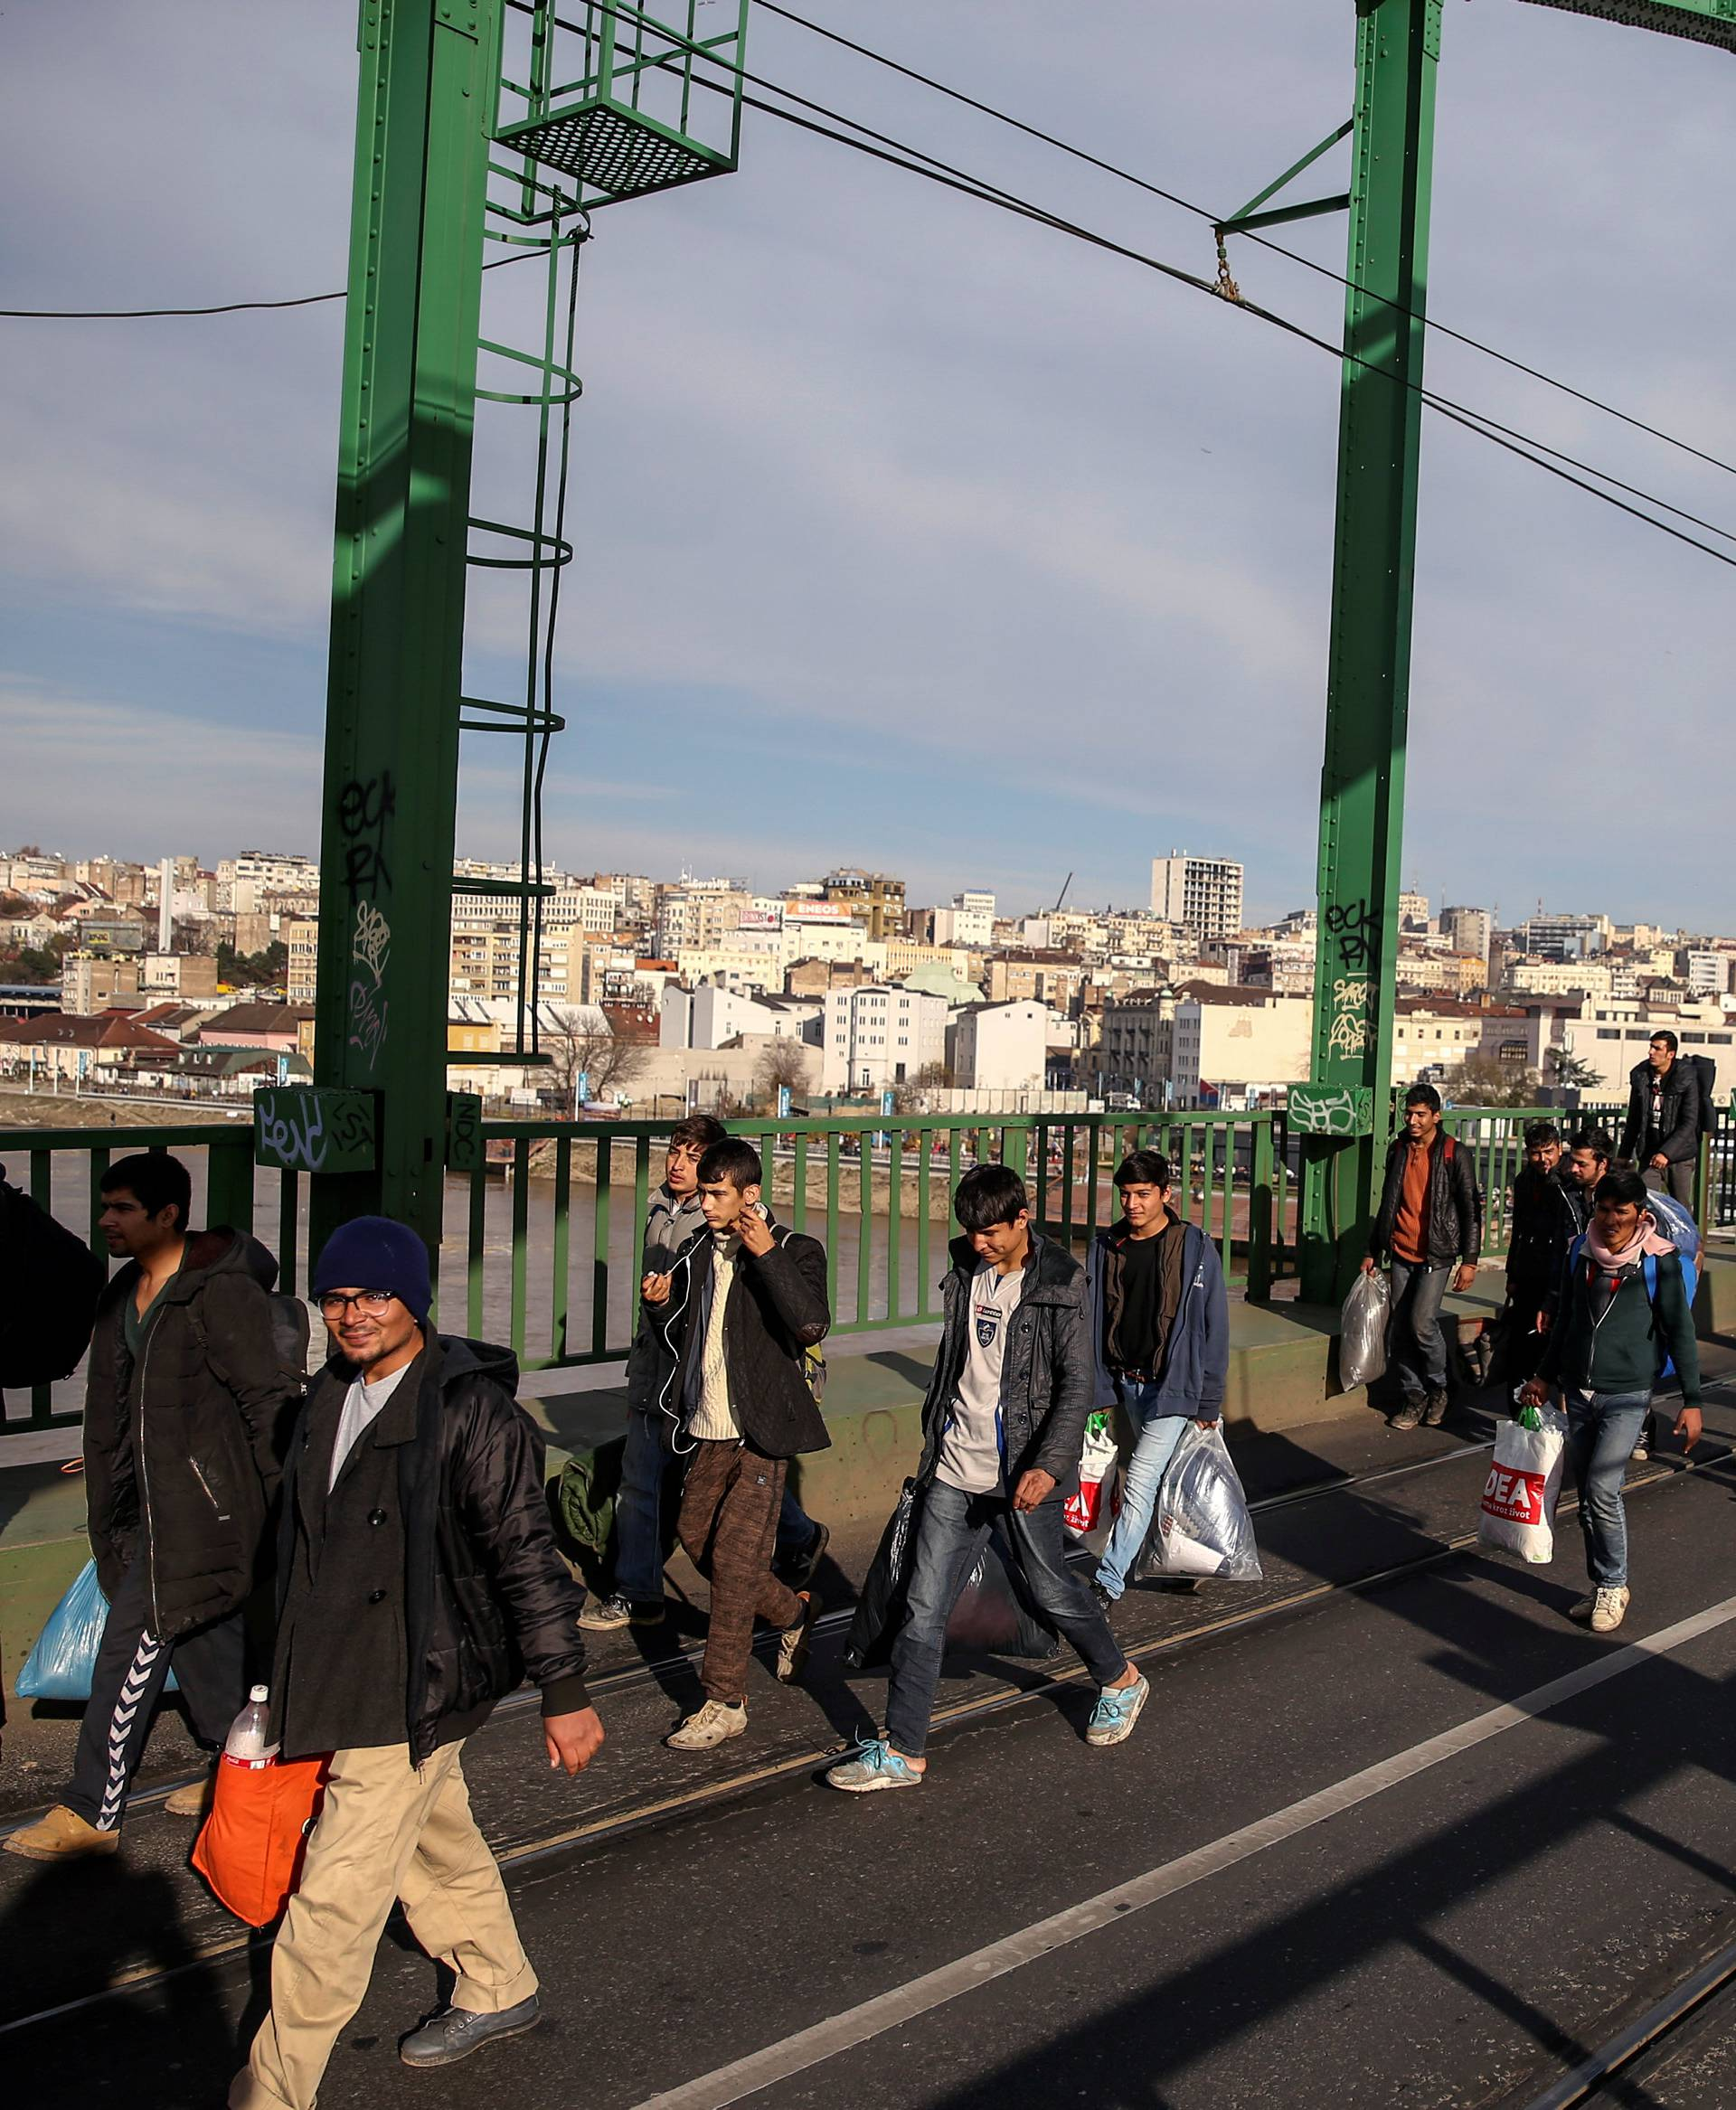 Refugees and migrants cross the Old Sava Bridge heading in the direction of the Croatian border, in Belgrade